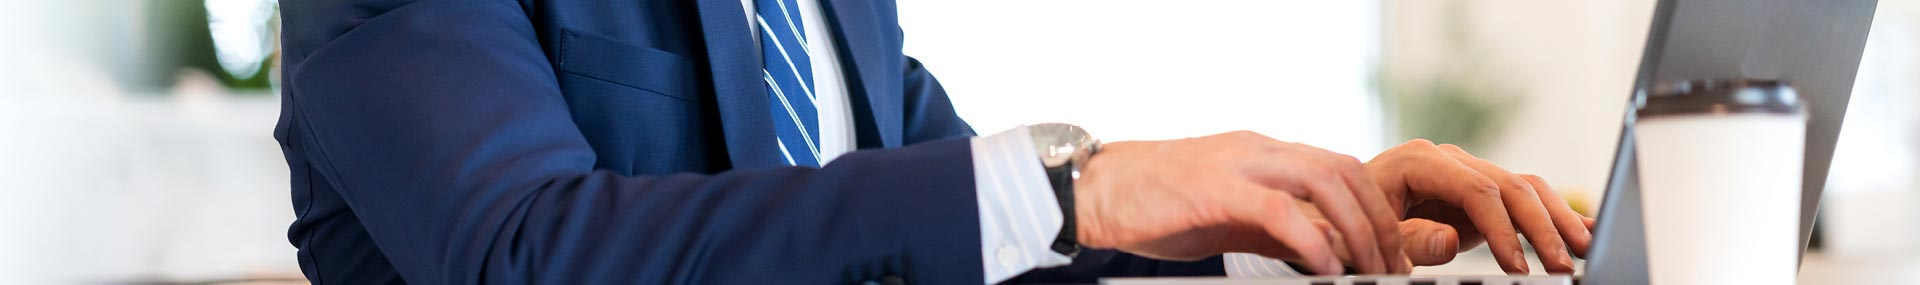 A man dressed in business attire searching on a computer for information.